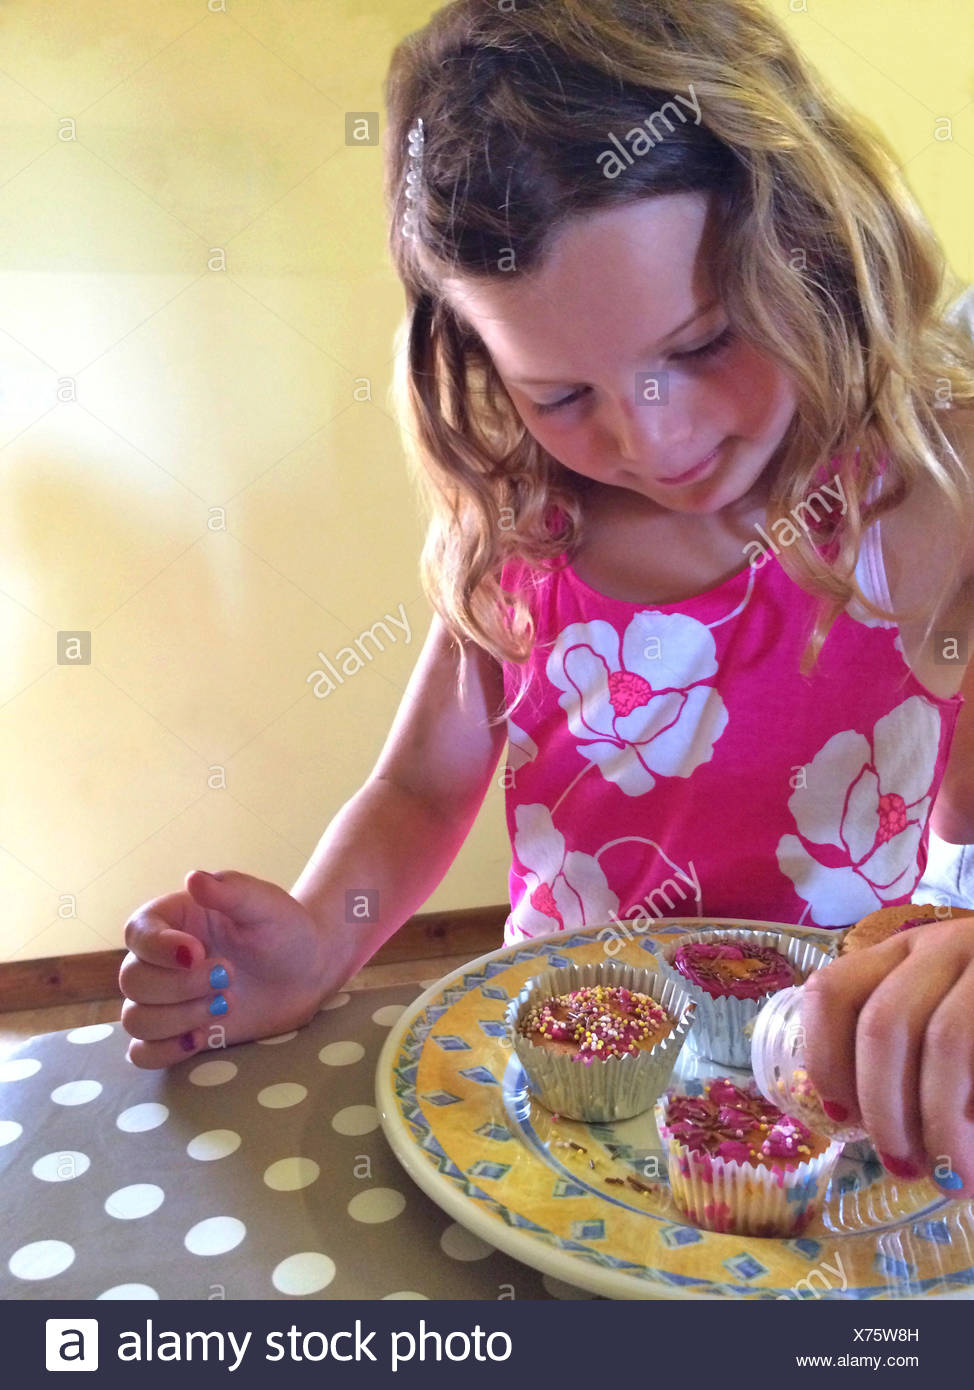 Girl decorating cupcakes - Stock Image